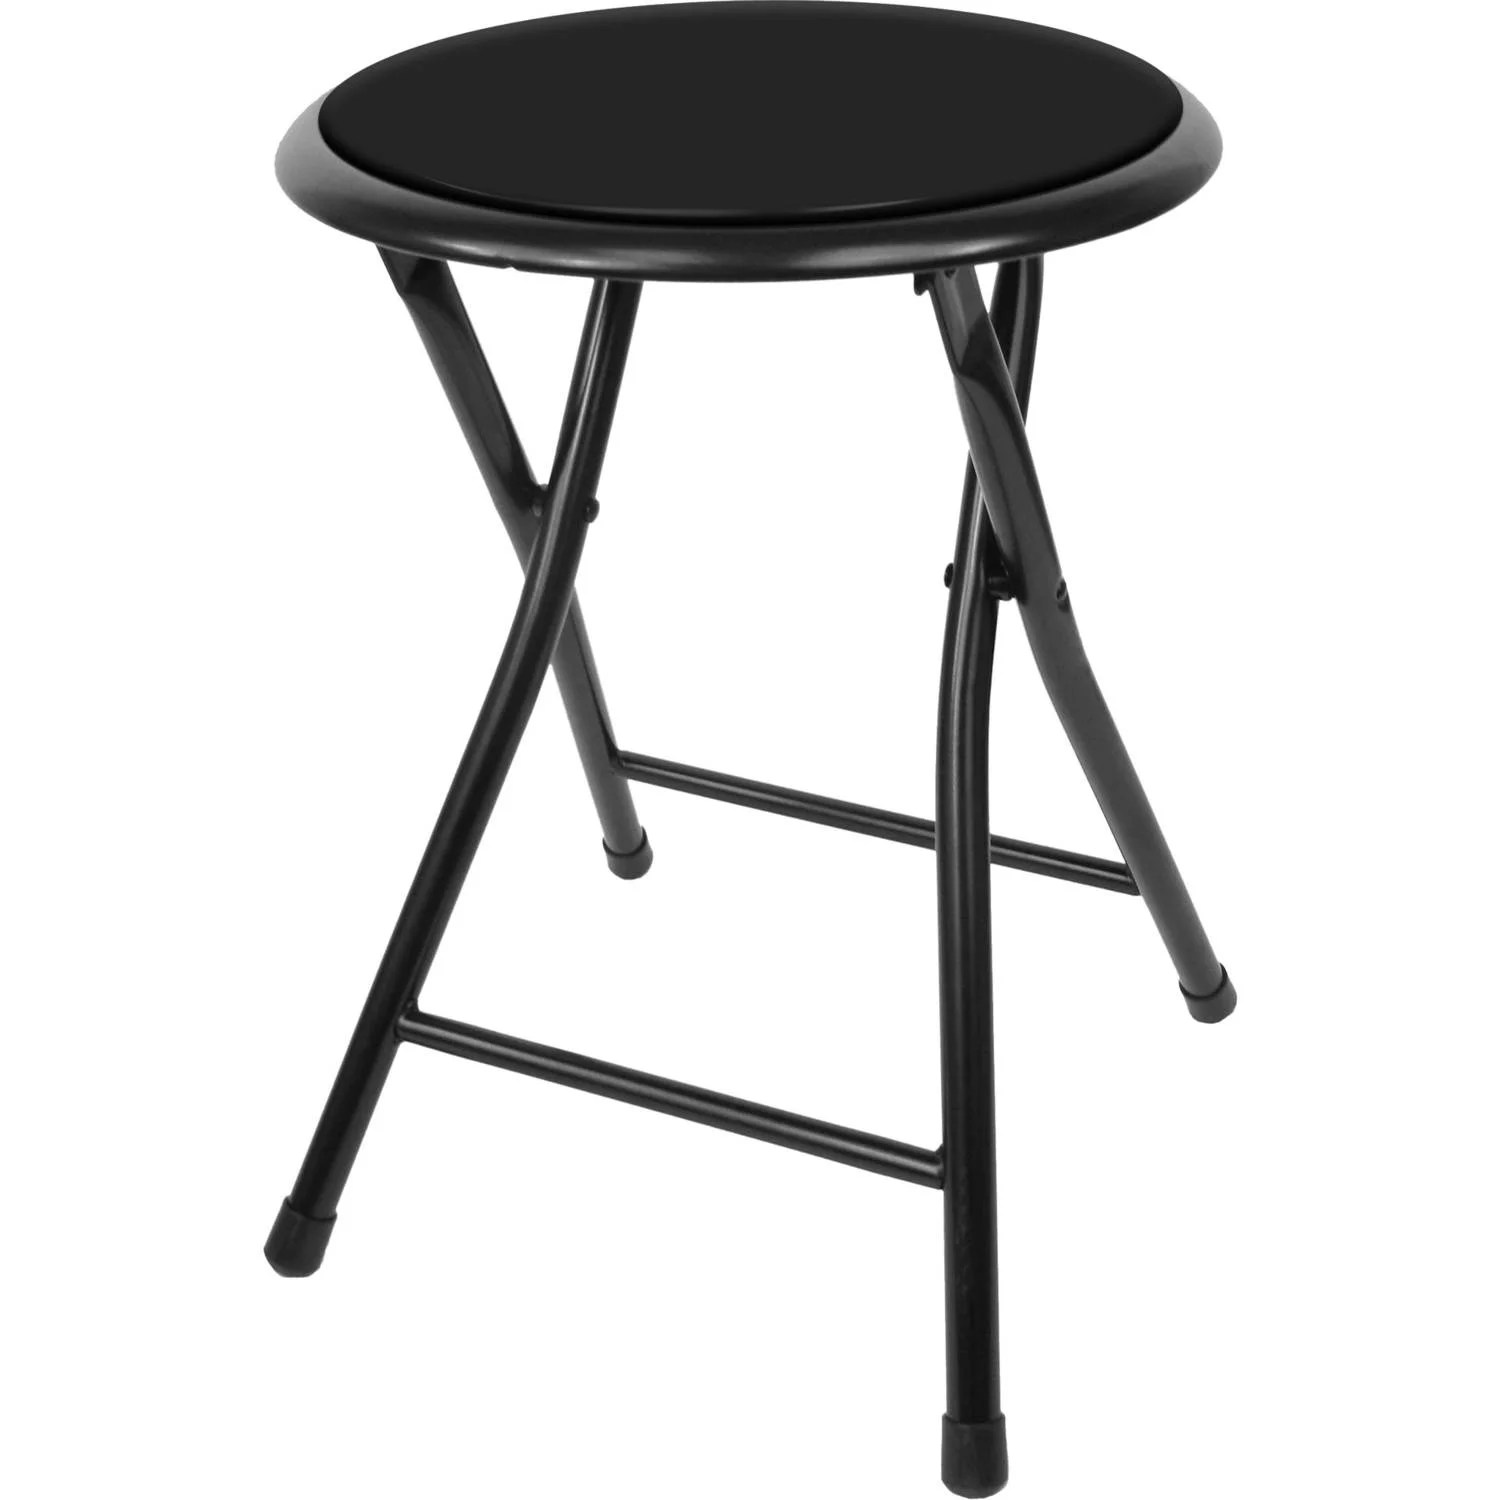 Stool Chair Folding Stool Heavy Duty 18 Inch Collapsible Padded Round Stool With 300 Pound Capacity For Dorm Rec Room Or Gameroom By Trademark Home Black